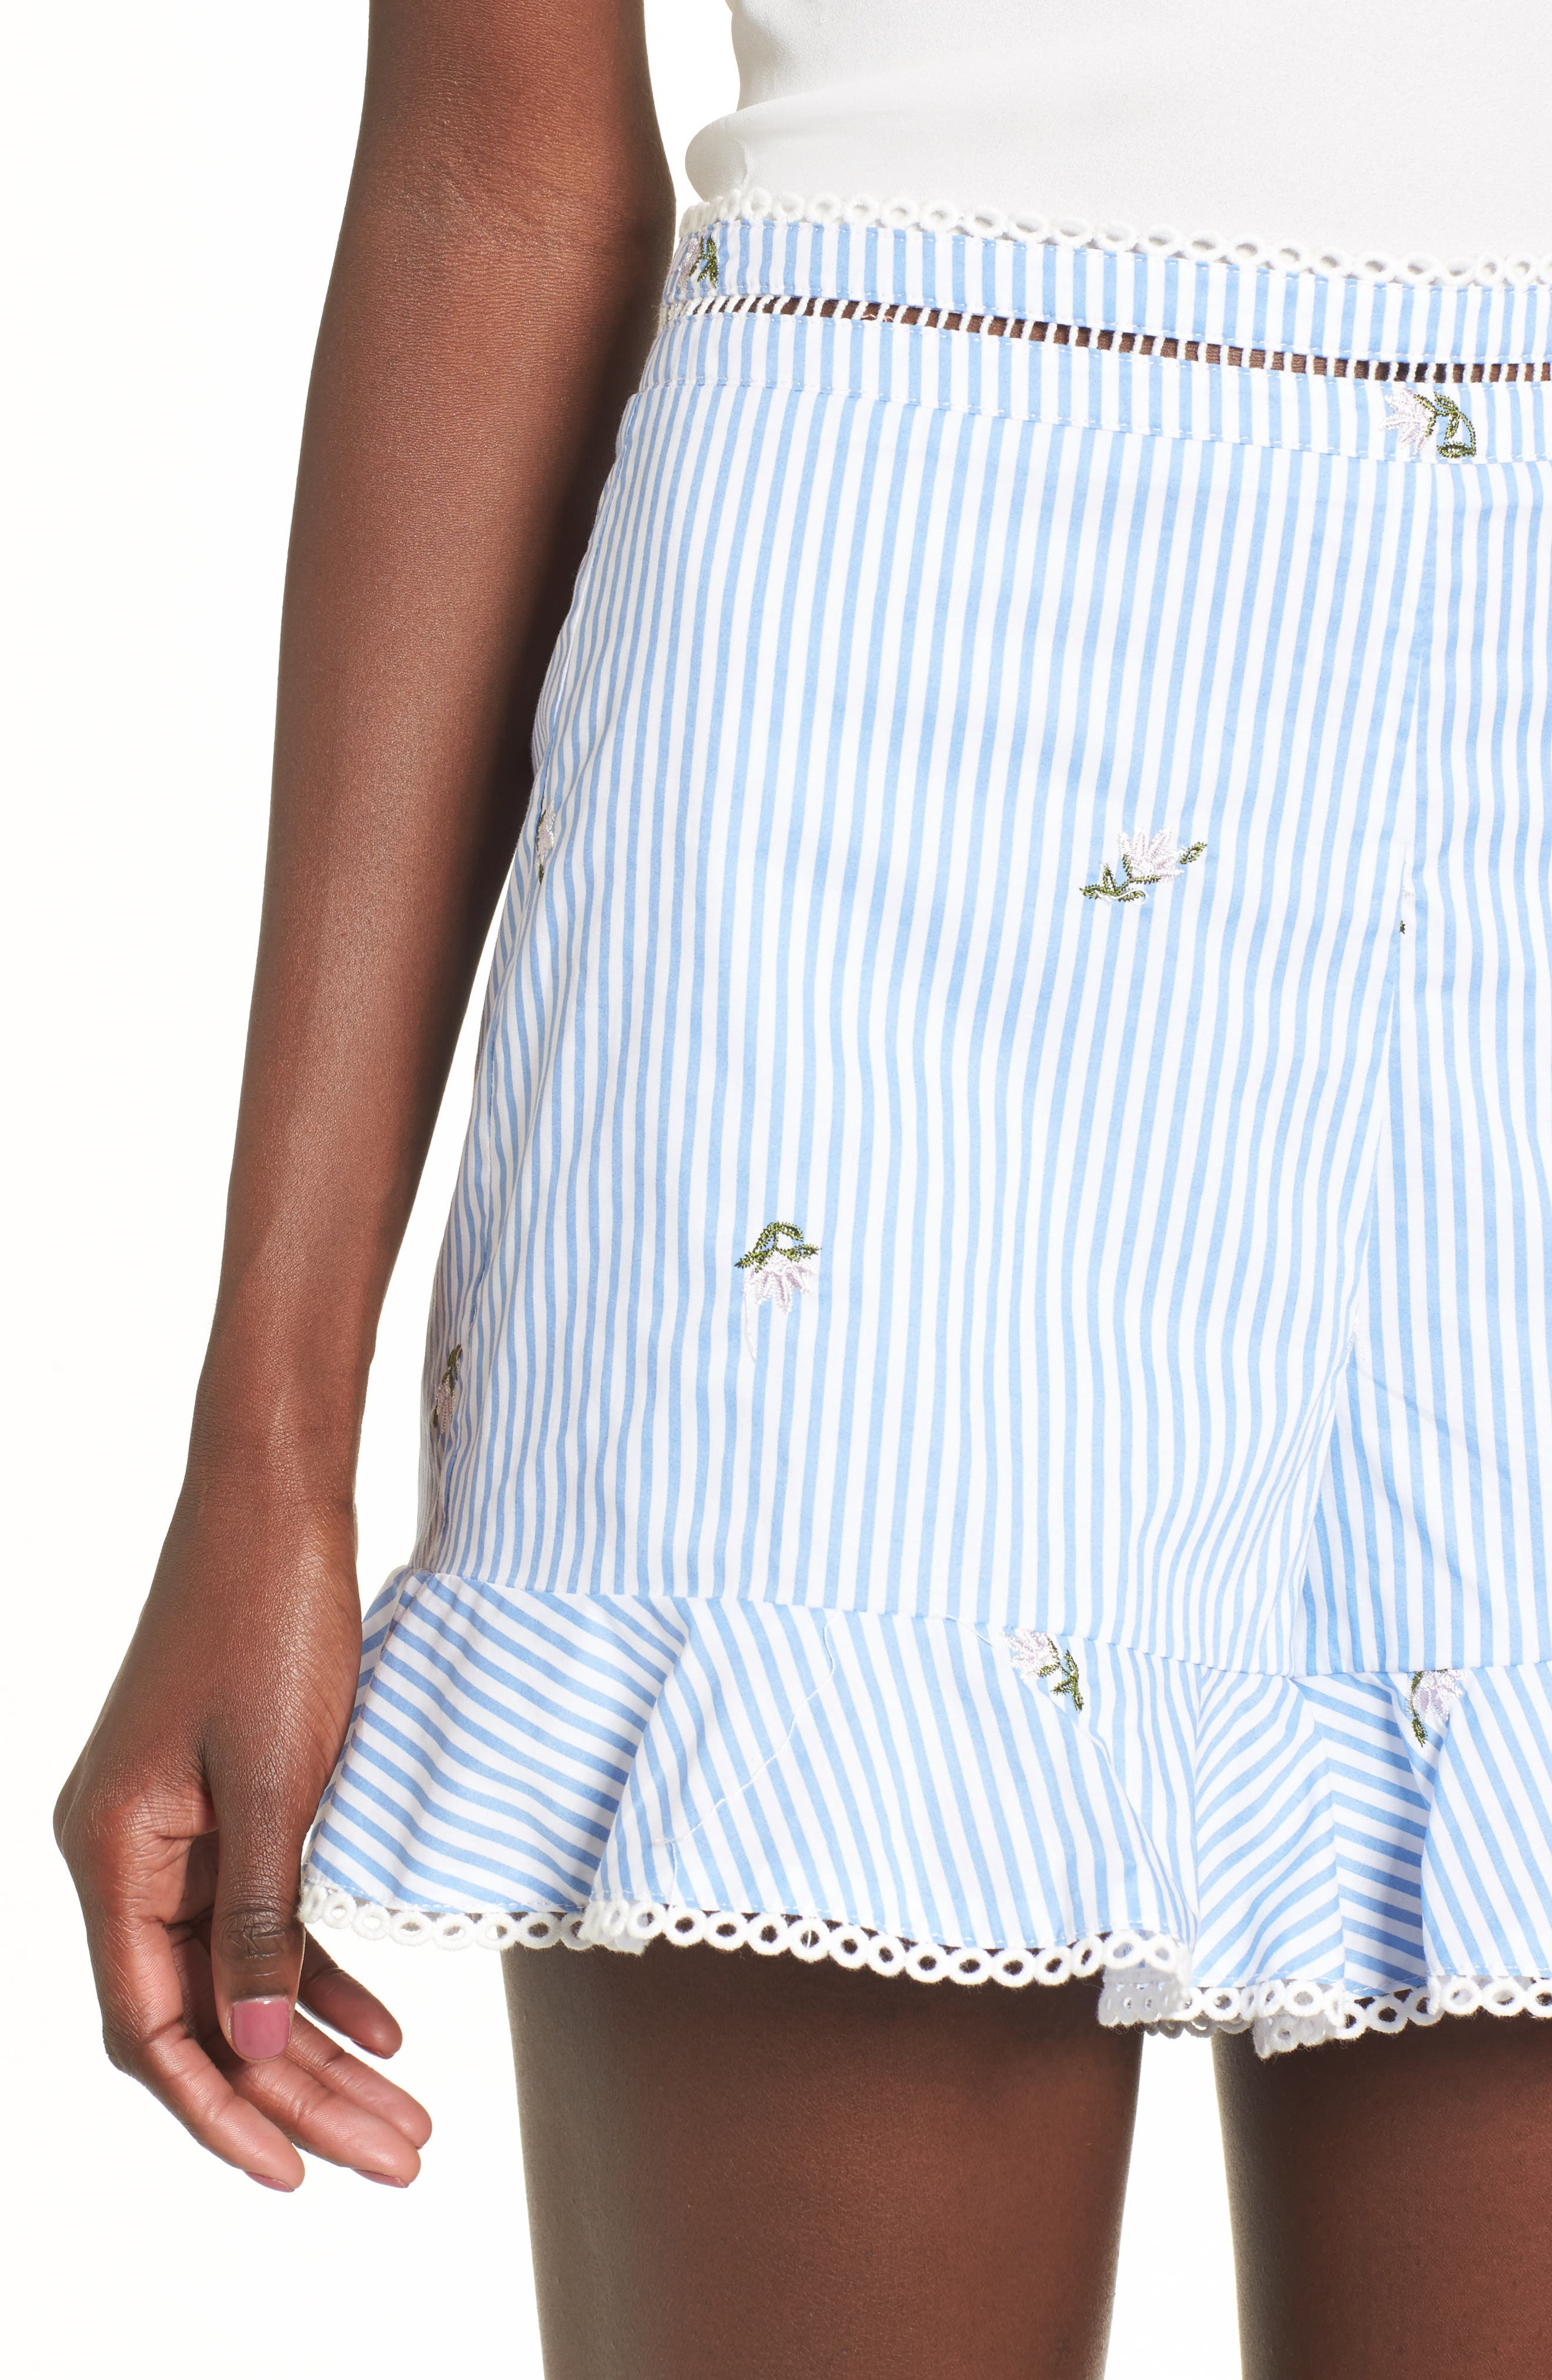 Embroidered Shorts,                             Alternate thumbnail 4, color,                             Blue/ Ivory Stripe